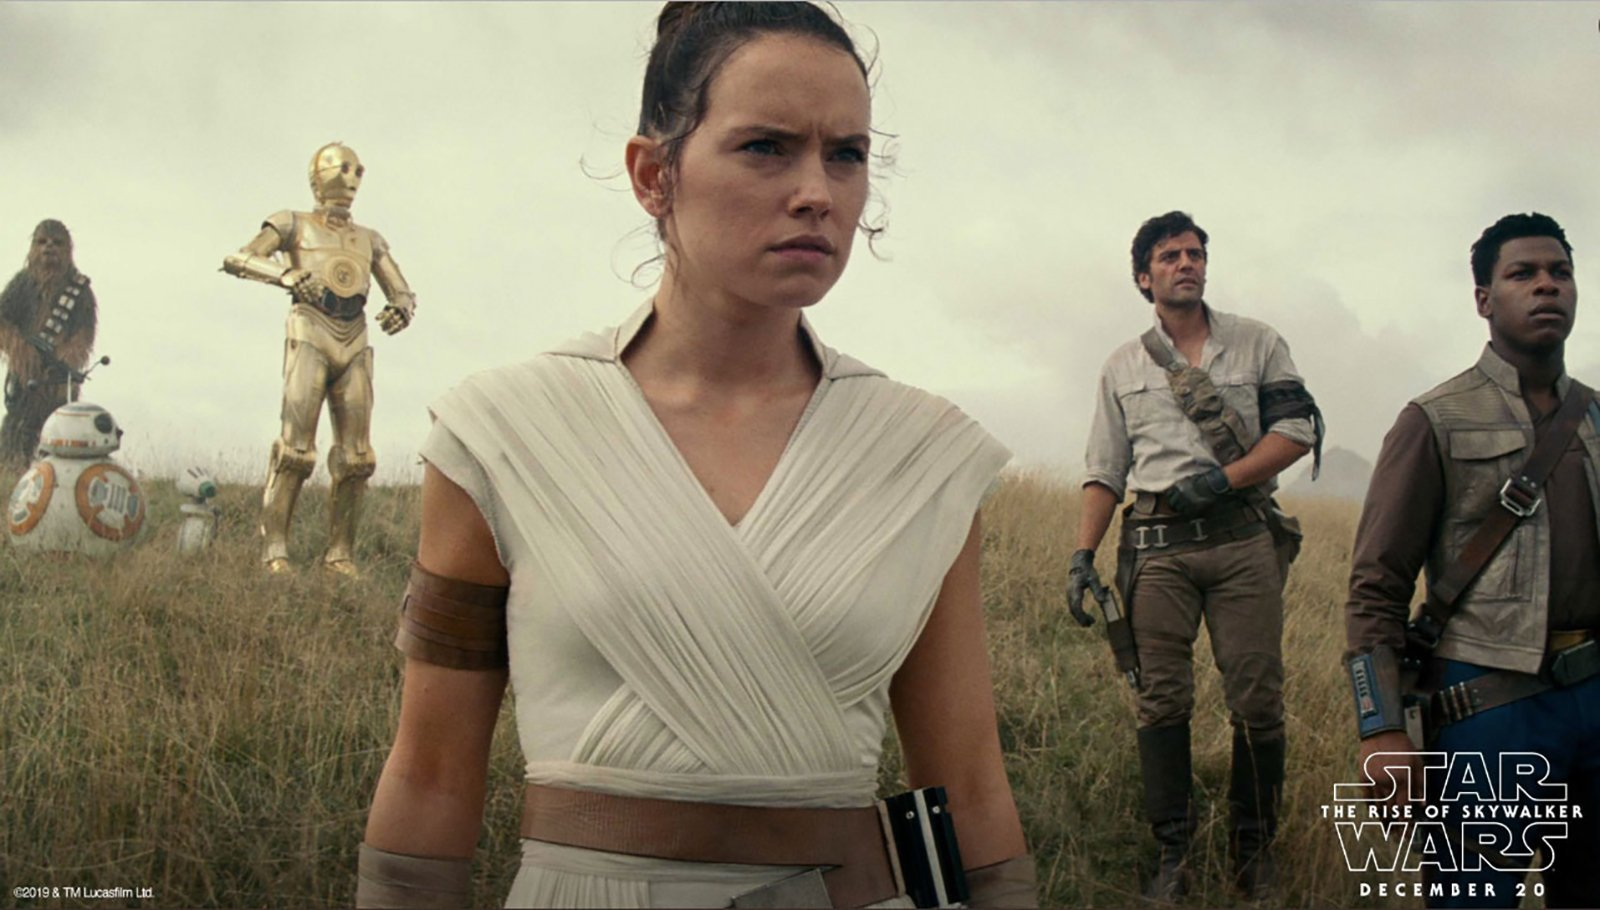 'Star Wars: The Rise of Skywalker' trailer showcases the final chapter of the Skywalker saga